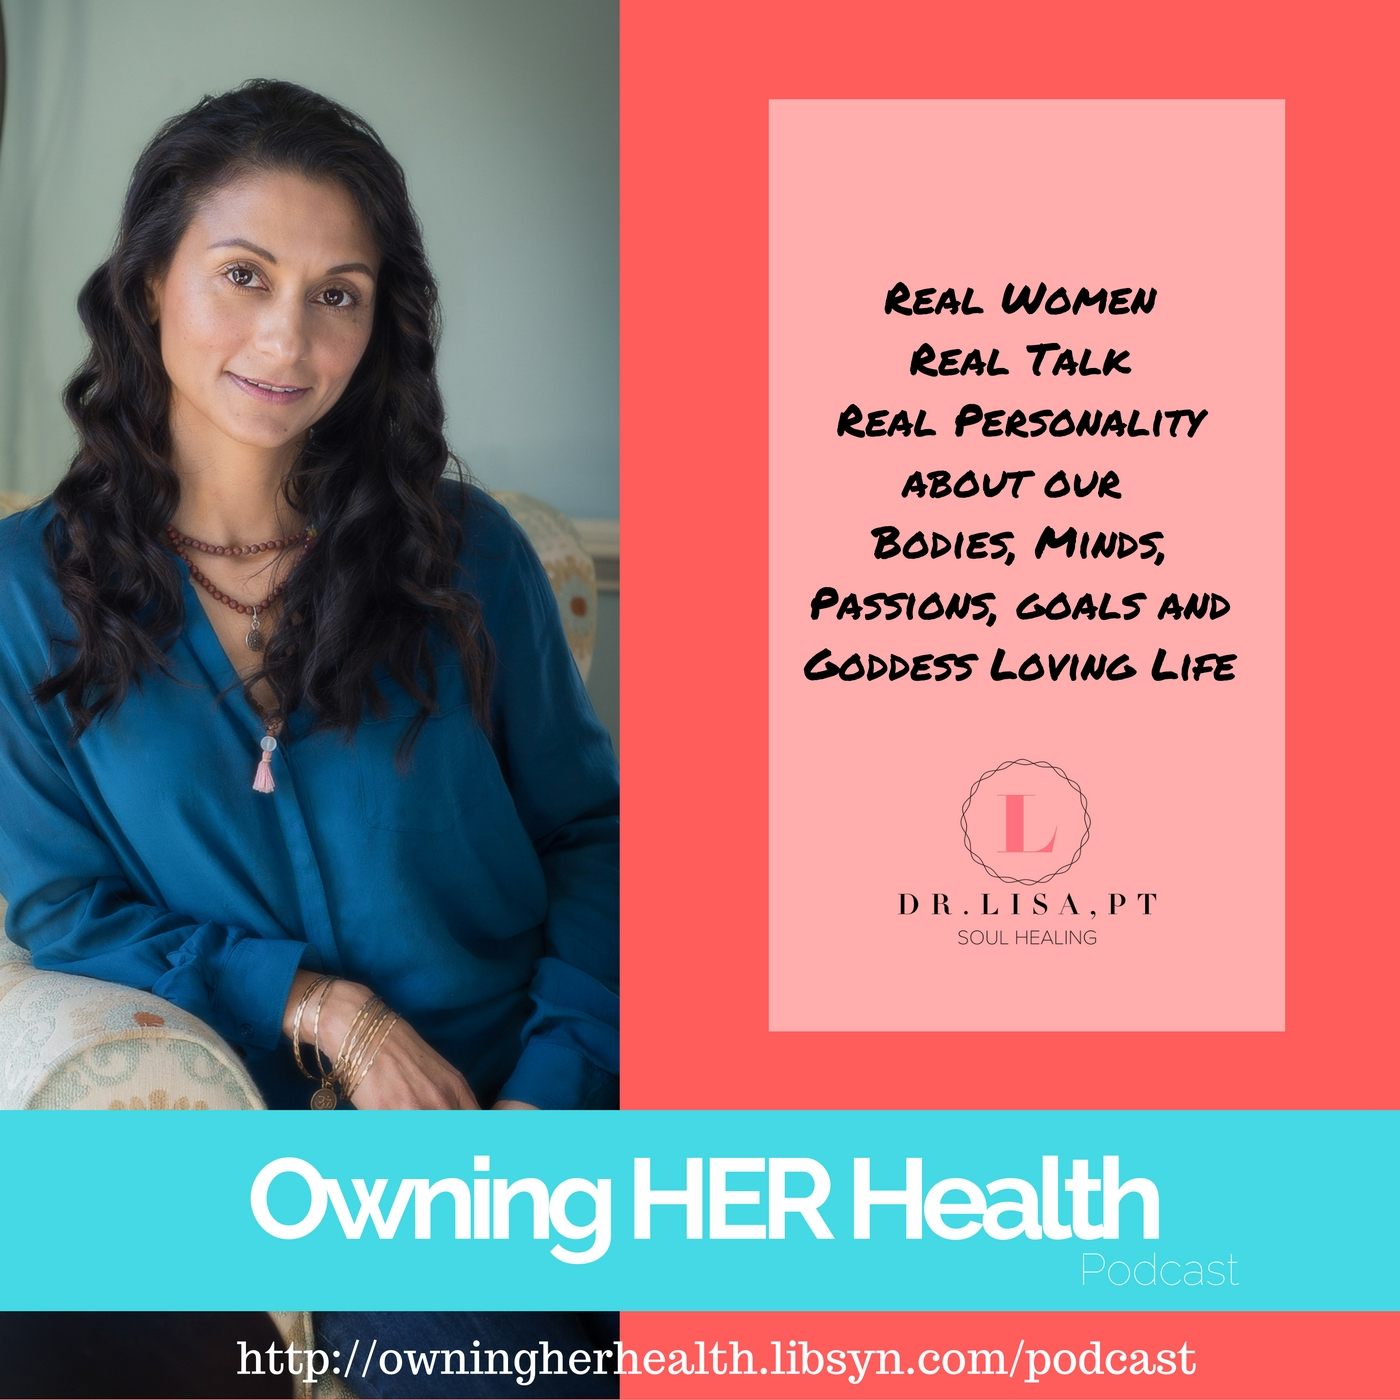 Owning HER Health podcast show art